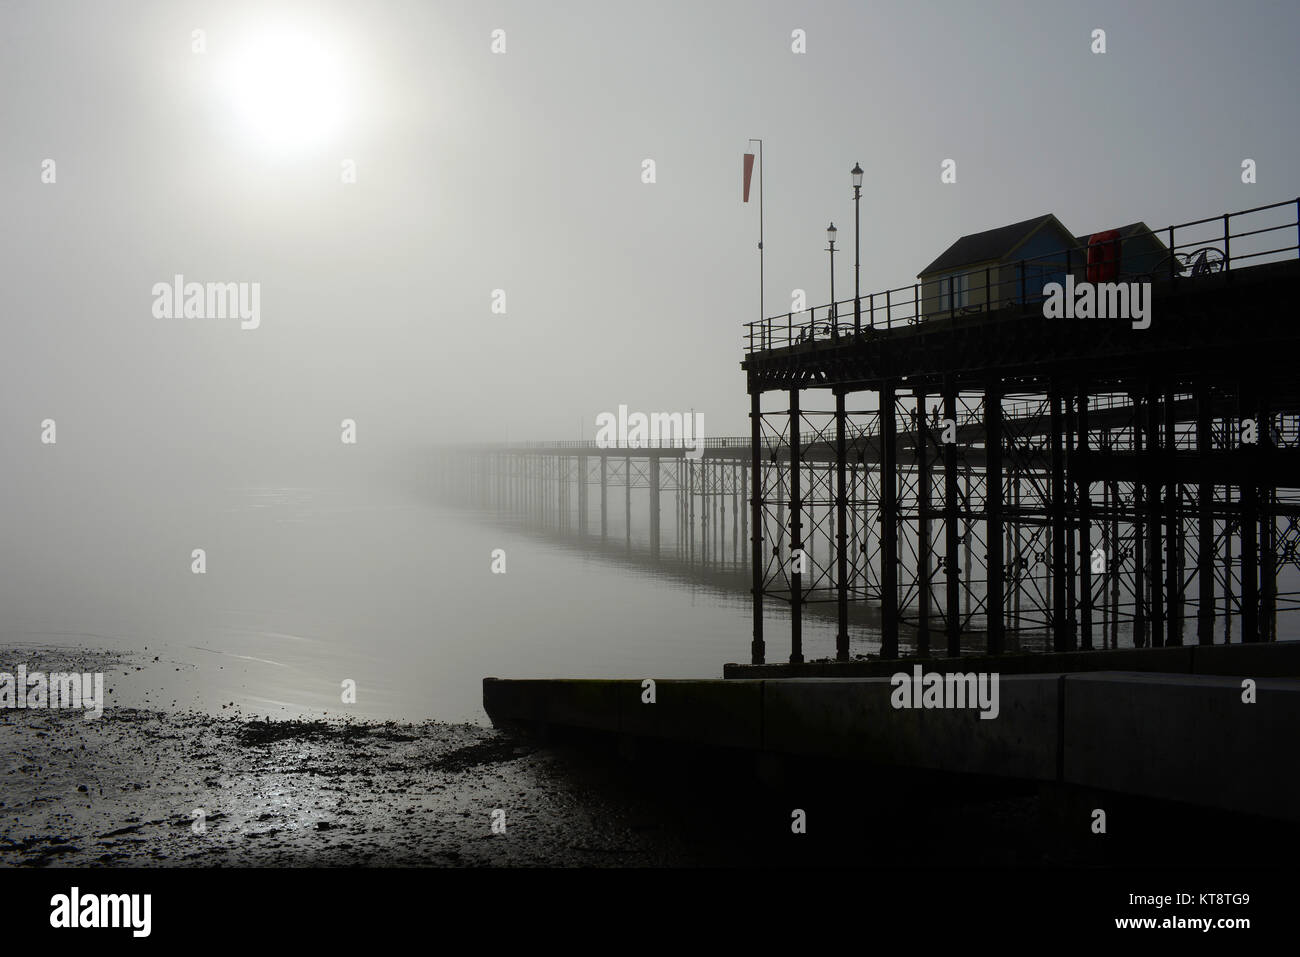 thick-fog-hangs-over-the-thames-estuary-enveloping-southend-pier-people-KT8TG9.jpg